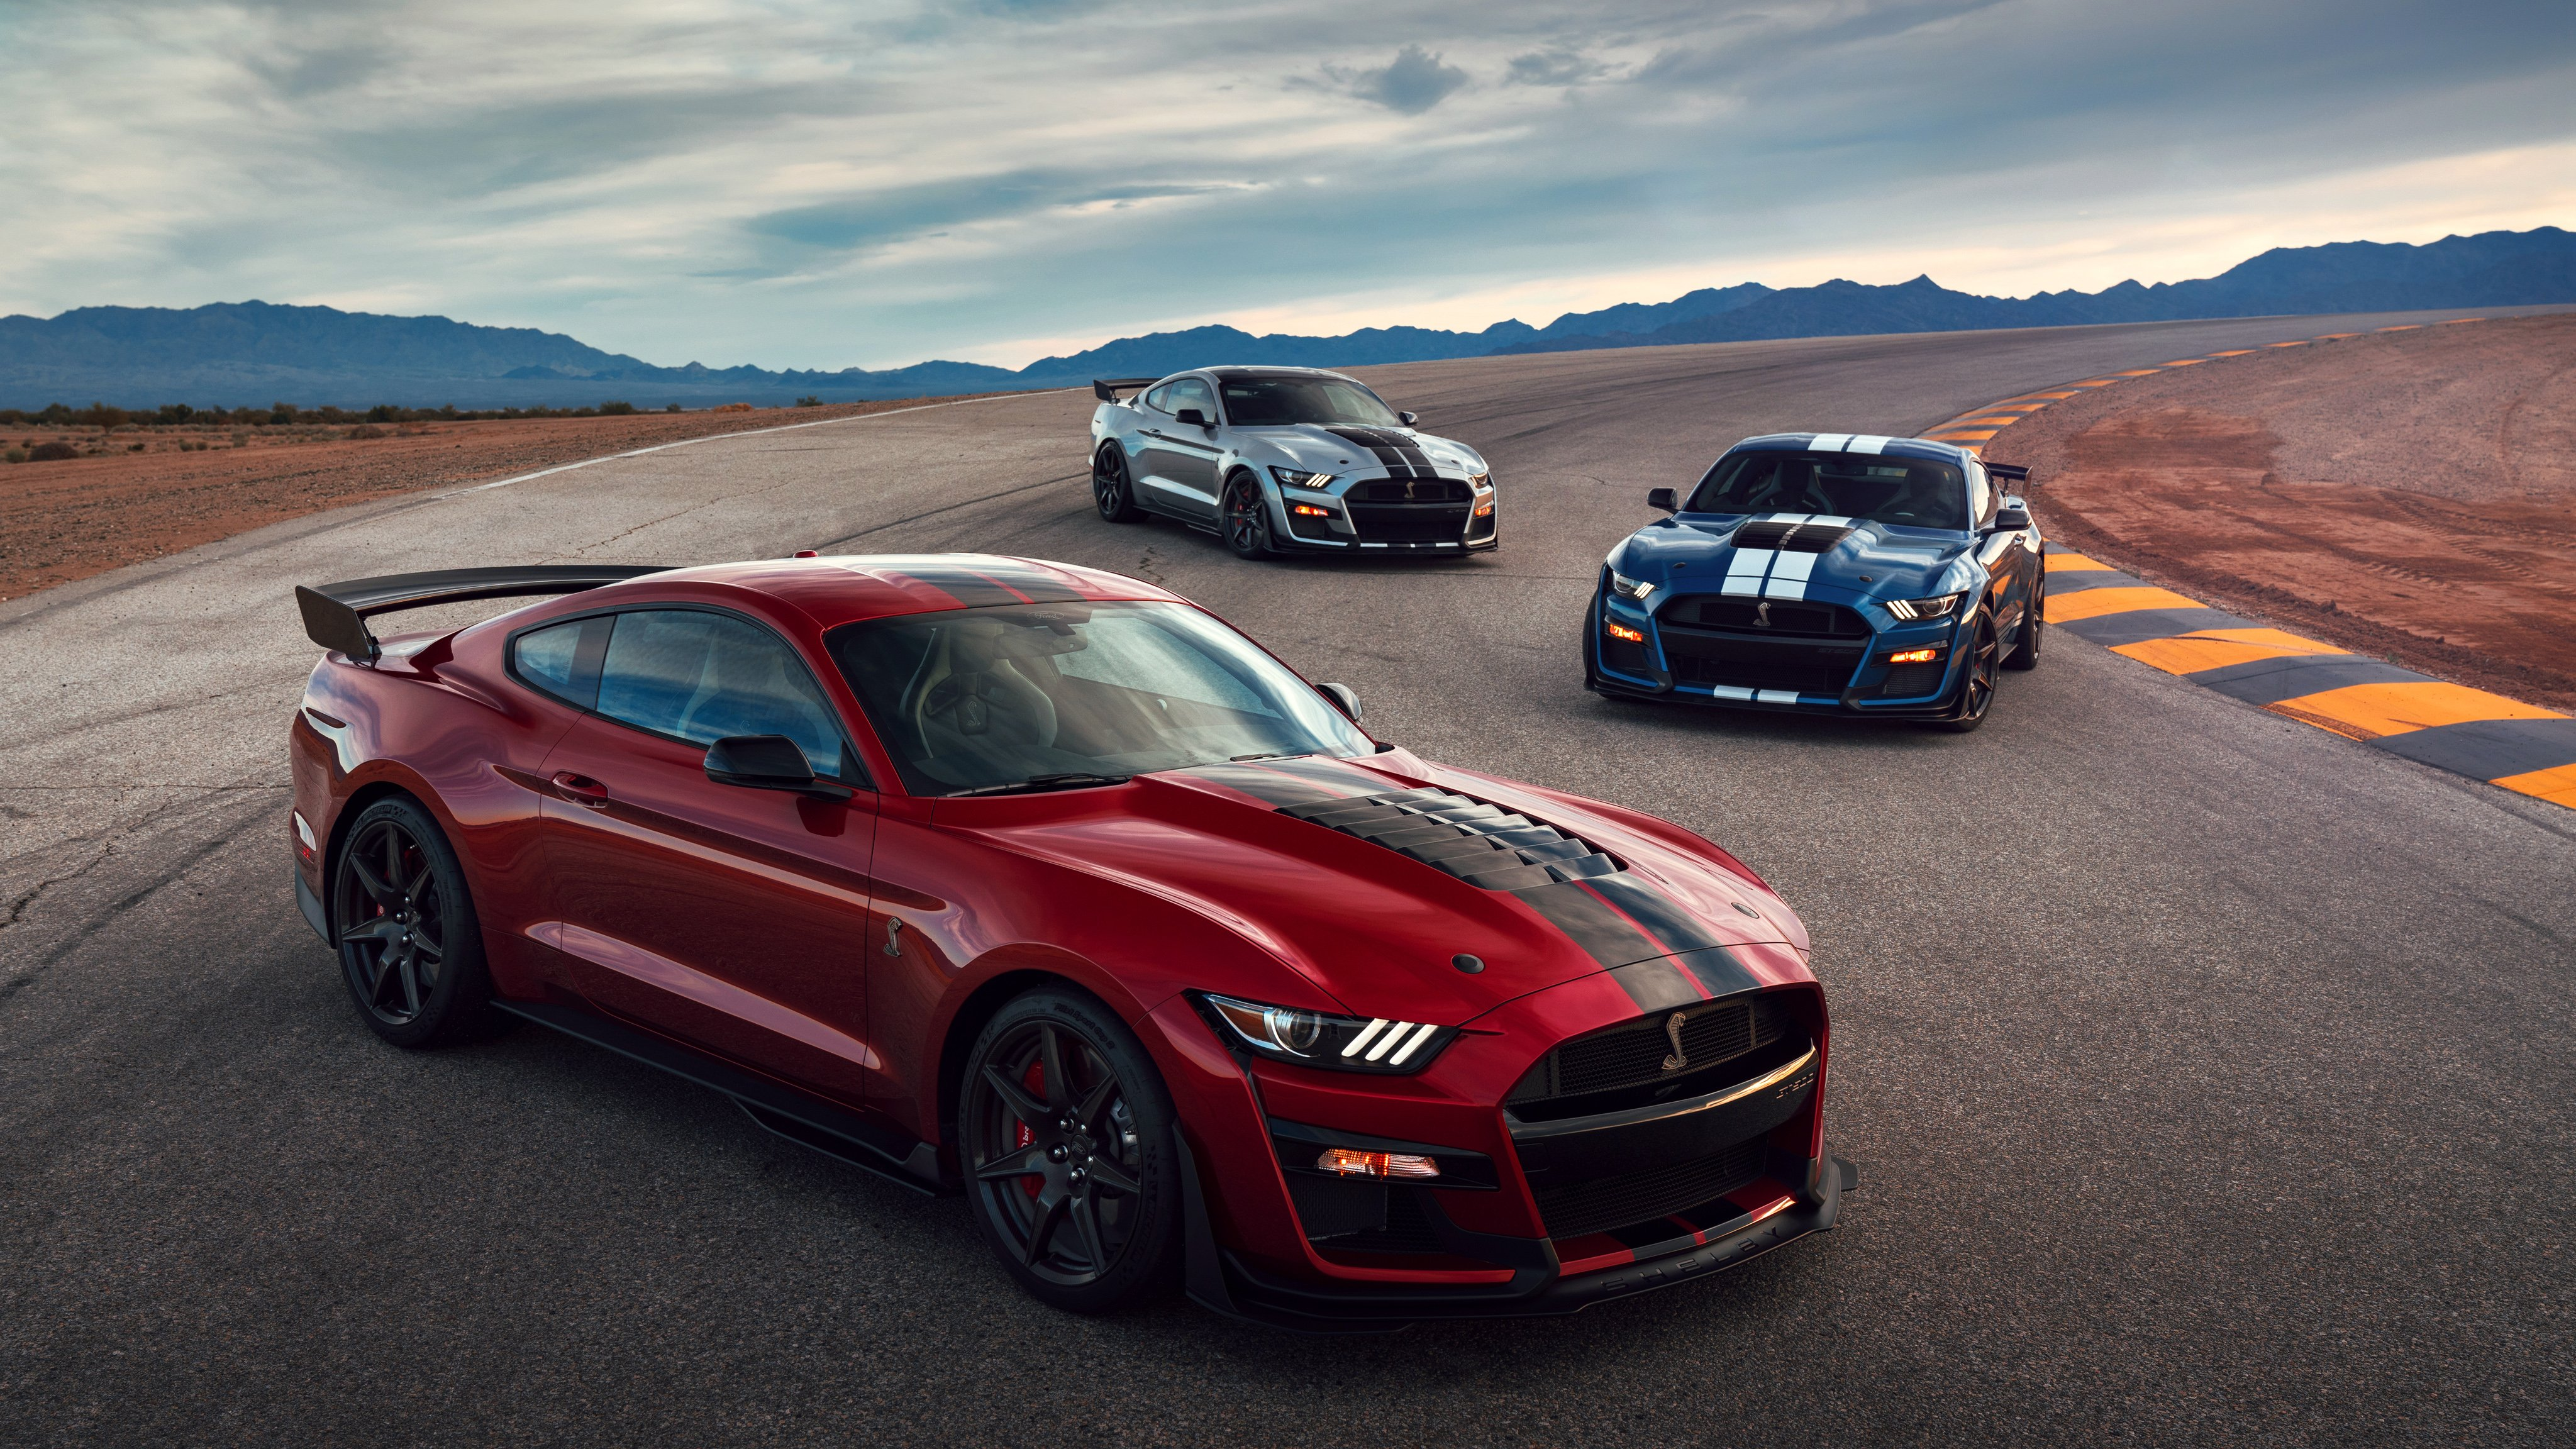 57+] Ford Mustang 2020 Wallpapers on